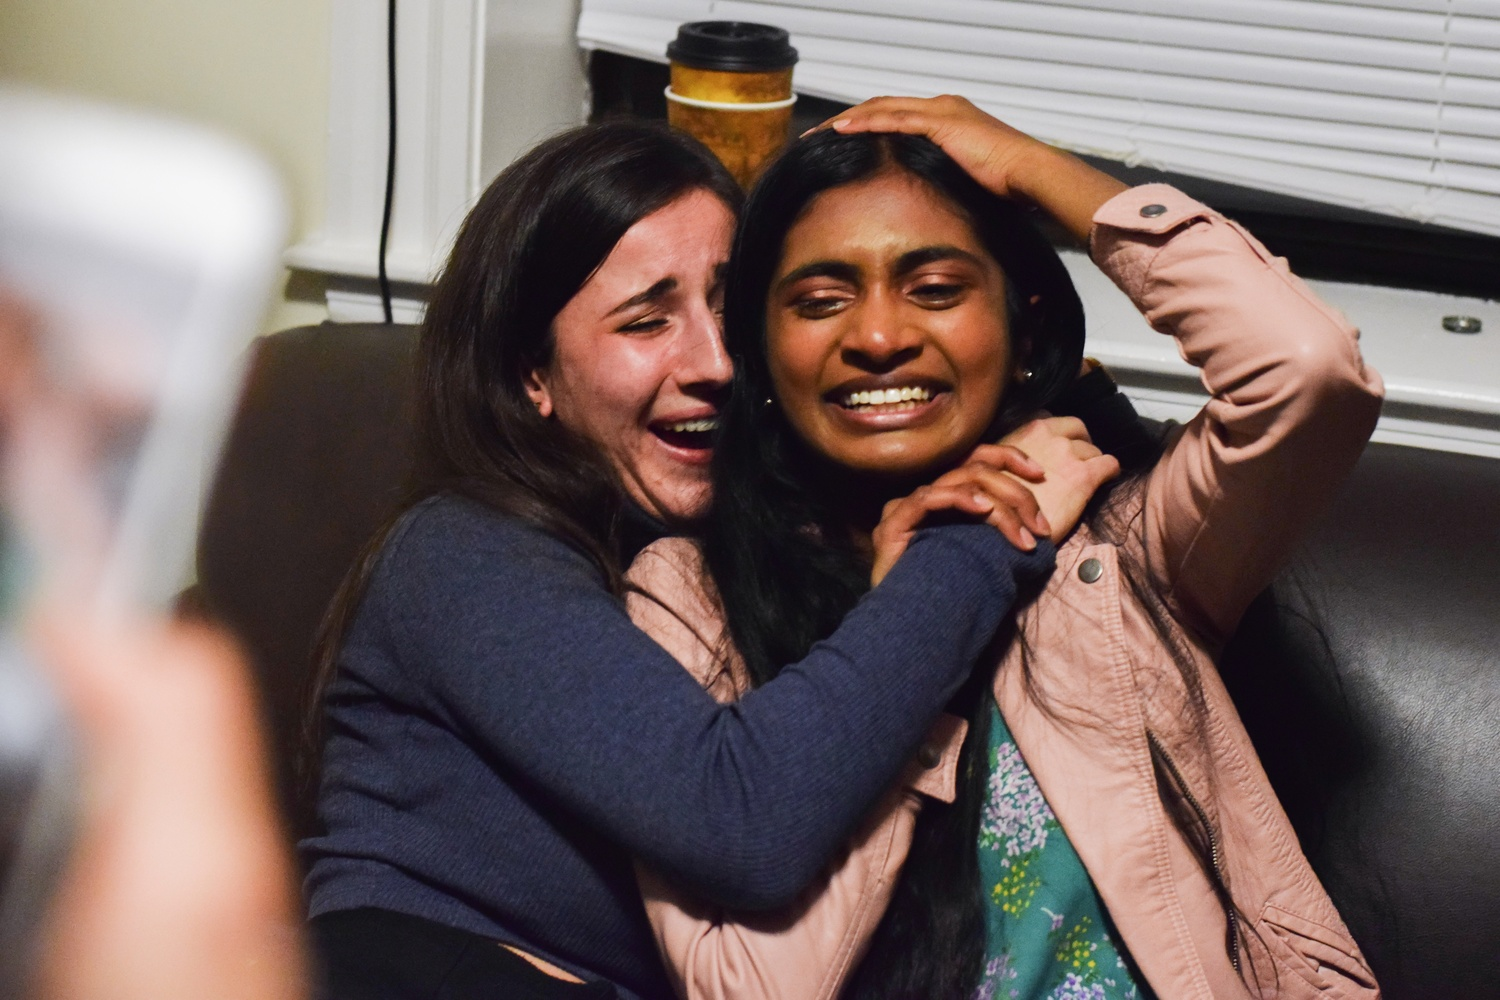 Sruthi Palaniappan '20 (right) and Julia M. Huesa '20 (left) collapse onto a couch after hearing that they won the Undergraduate Council presidential election.